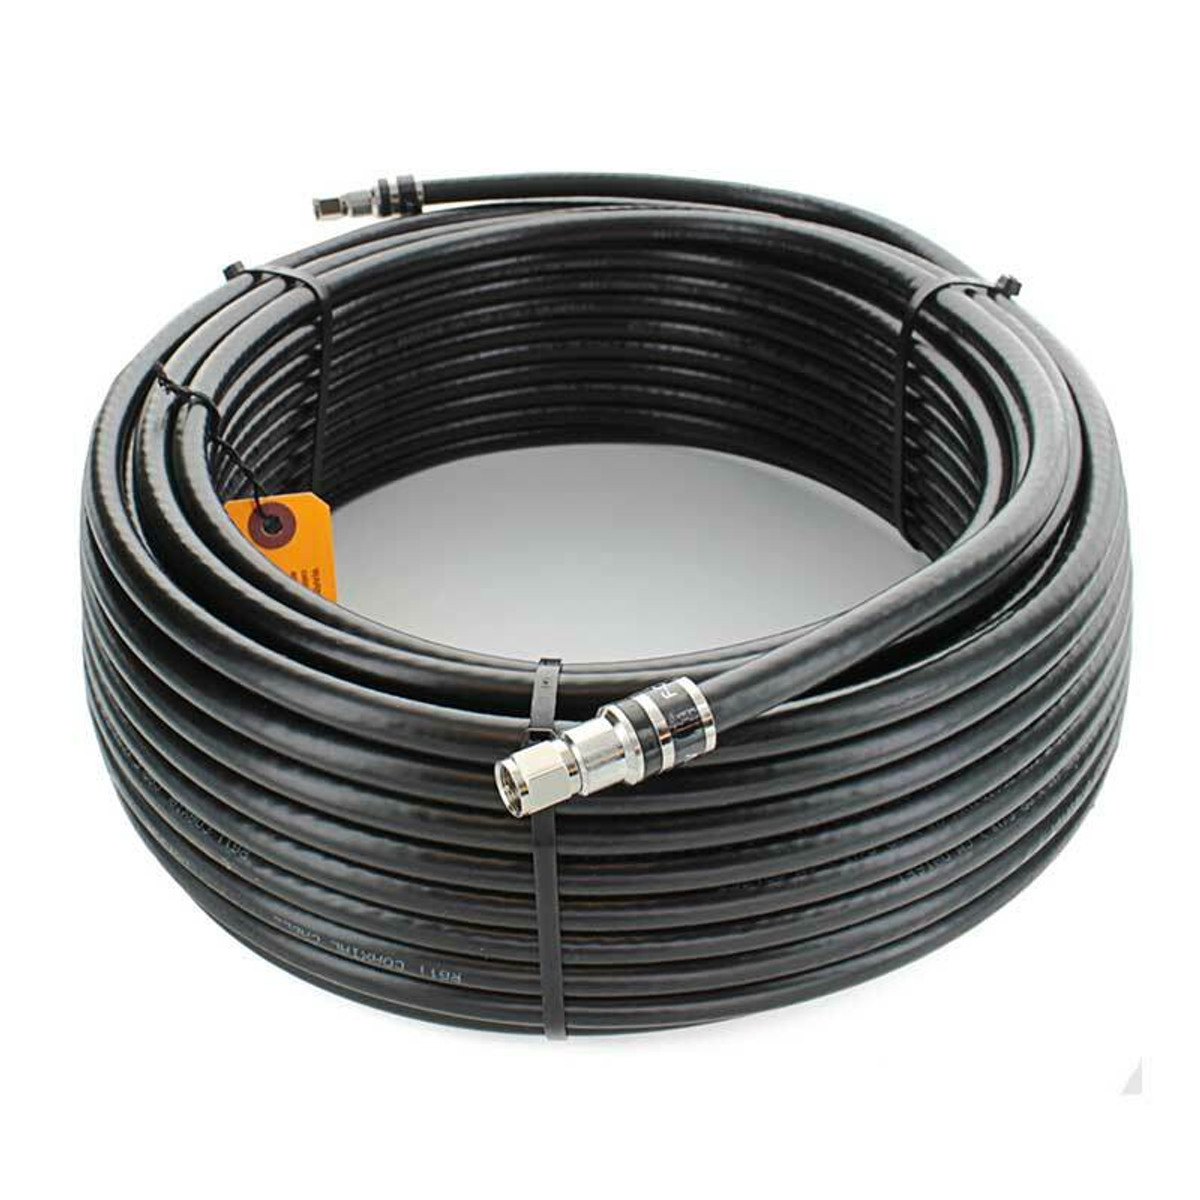 Wilson Electronics weBoost Wilson 951155 RG11 or 500 ft Black Cable